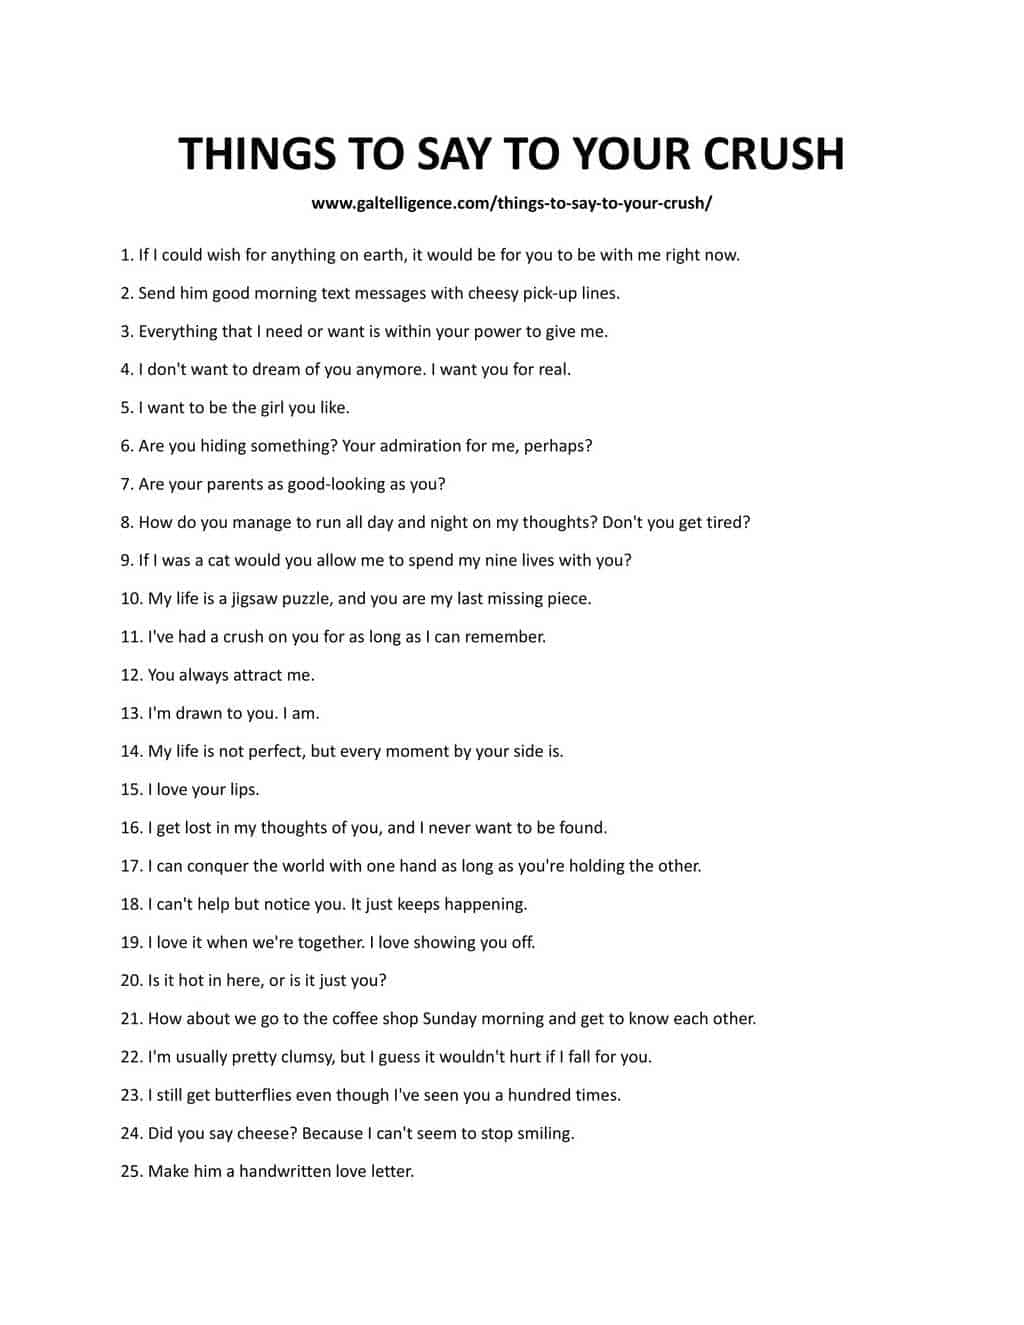 Downloadable list of things to say